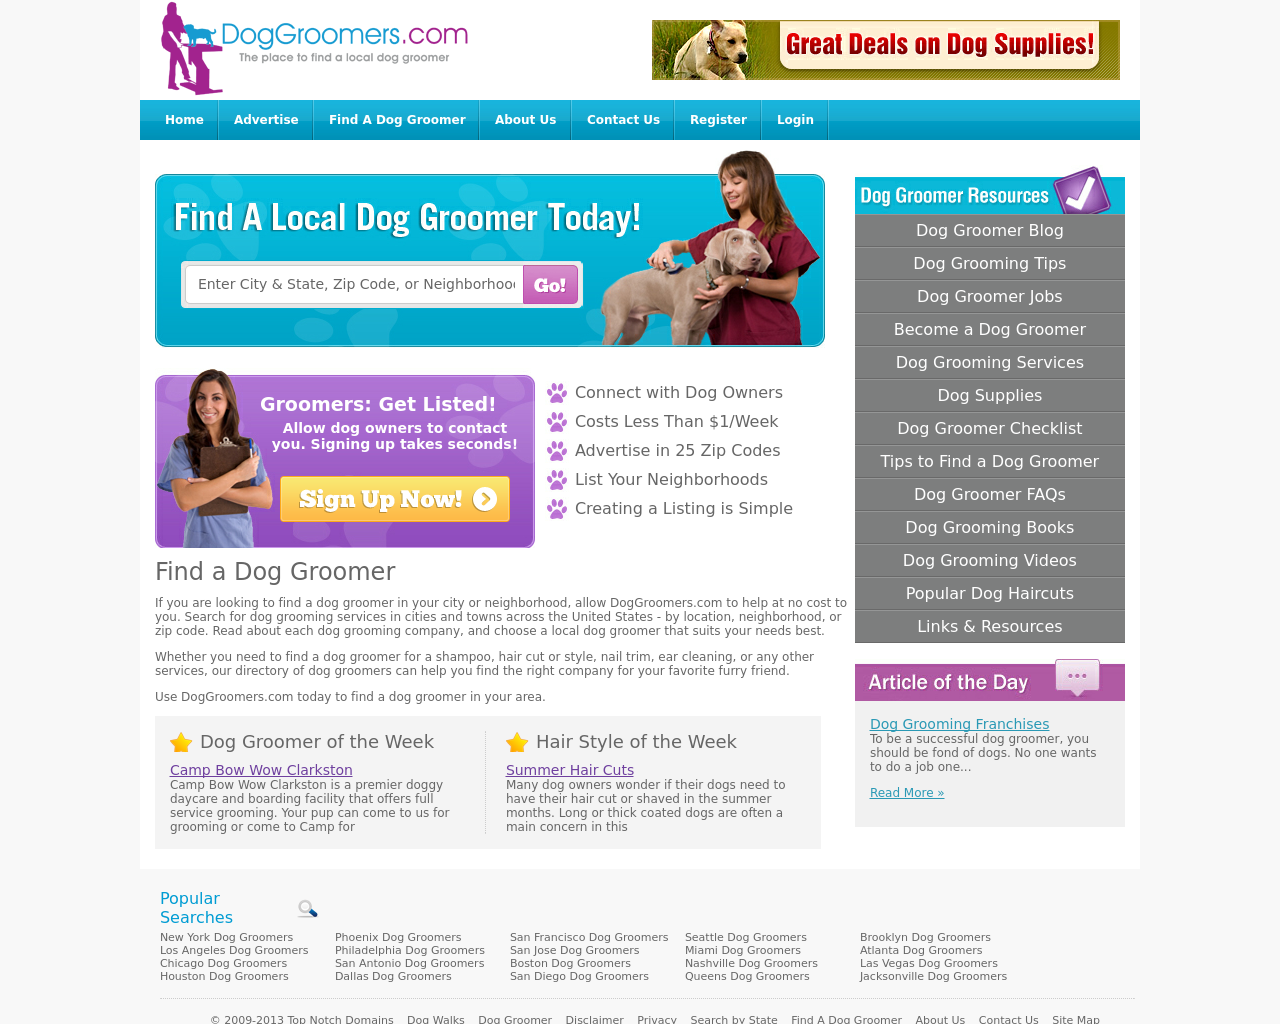 DogGroomers.com-Advertising-Reviews-Pricing